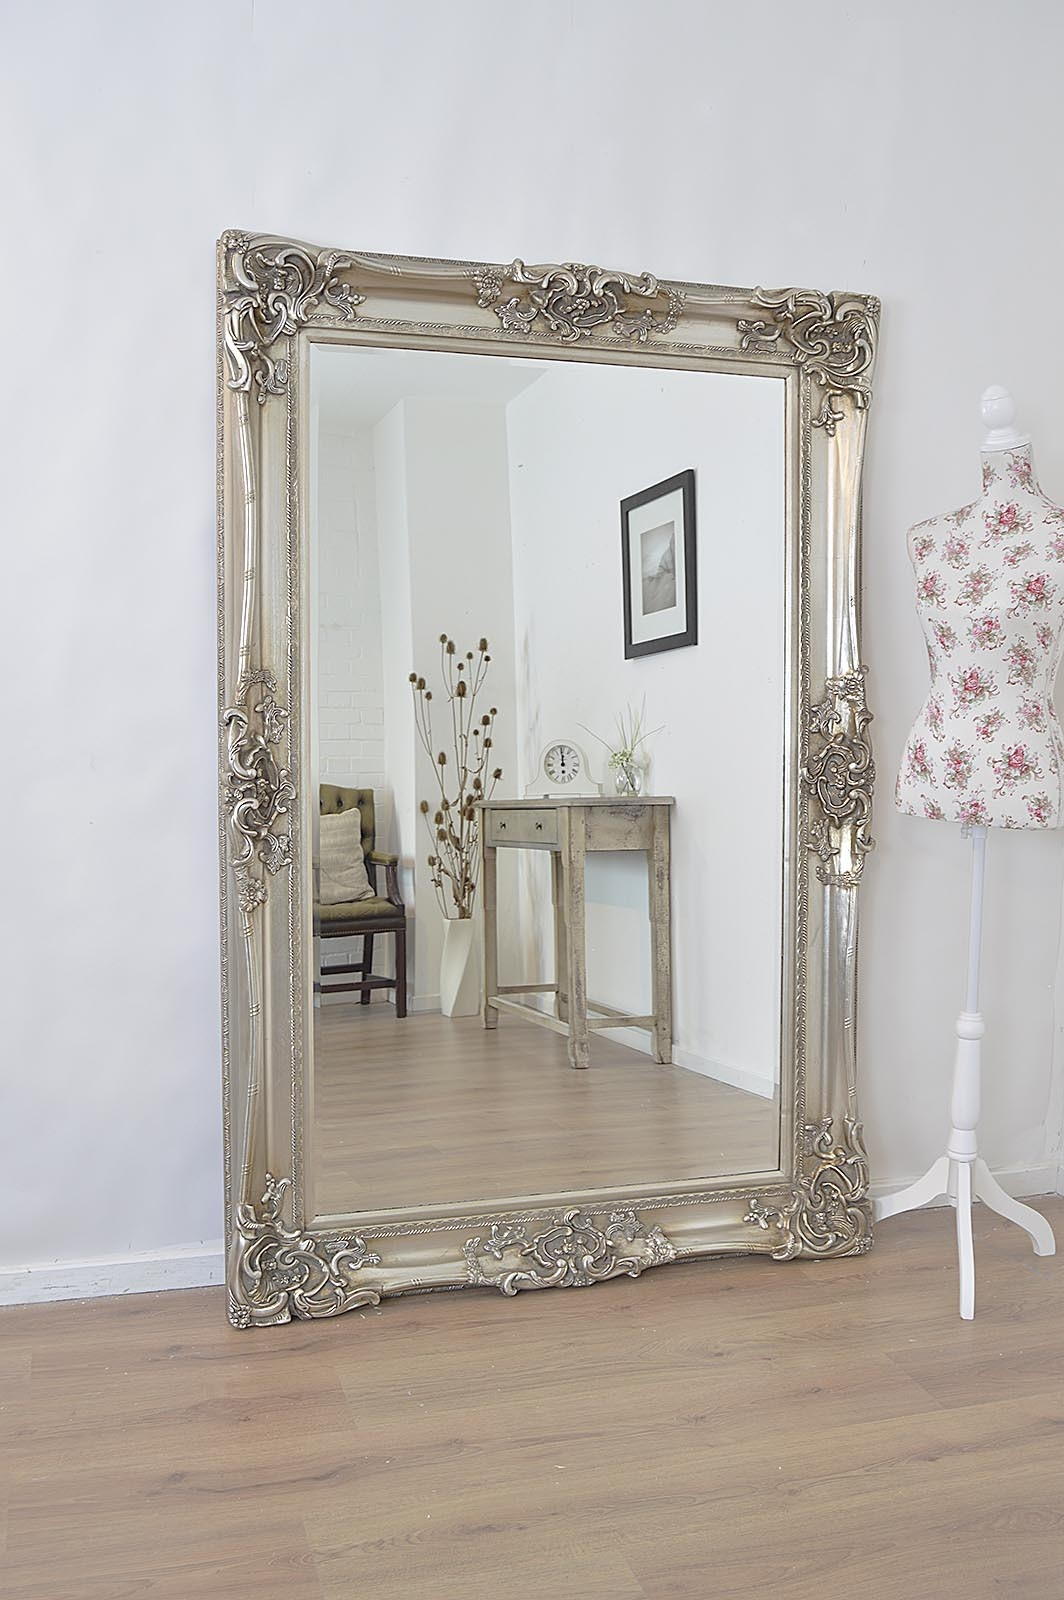 Fine Decoration Huge Wall Mirror Cozy Design Silver Ornate Huge Within Ornate Silver Mirrors (Image 5 of 15)